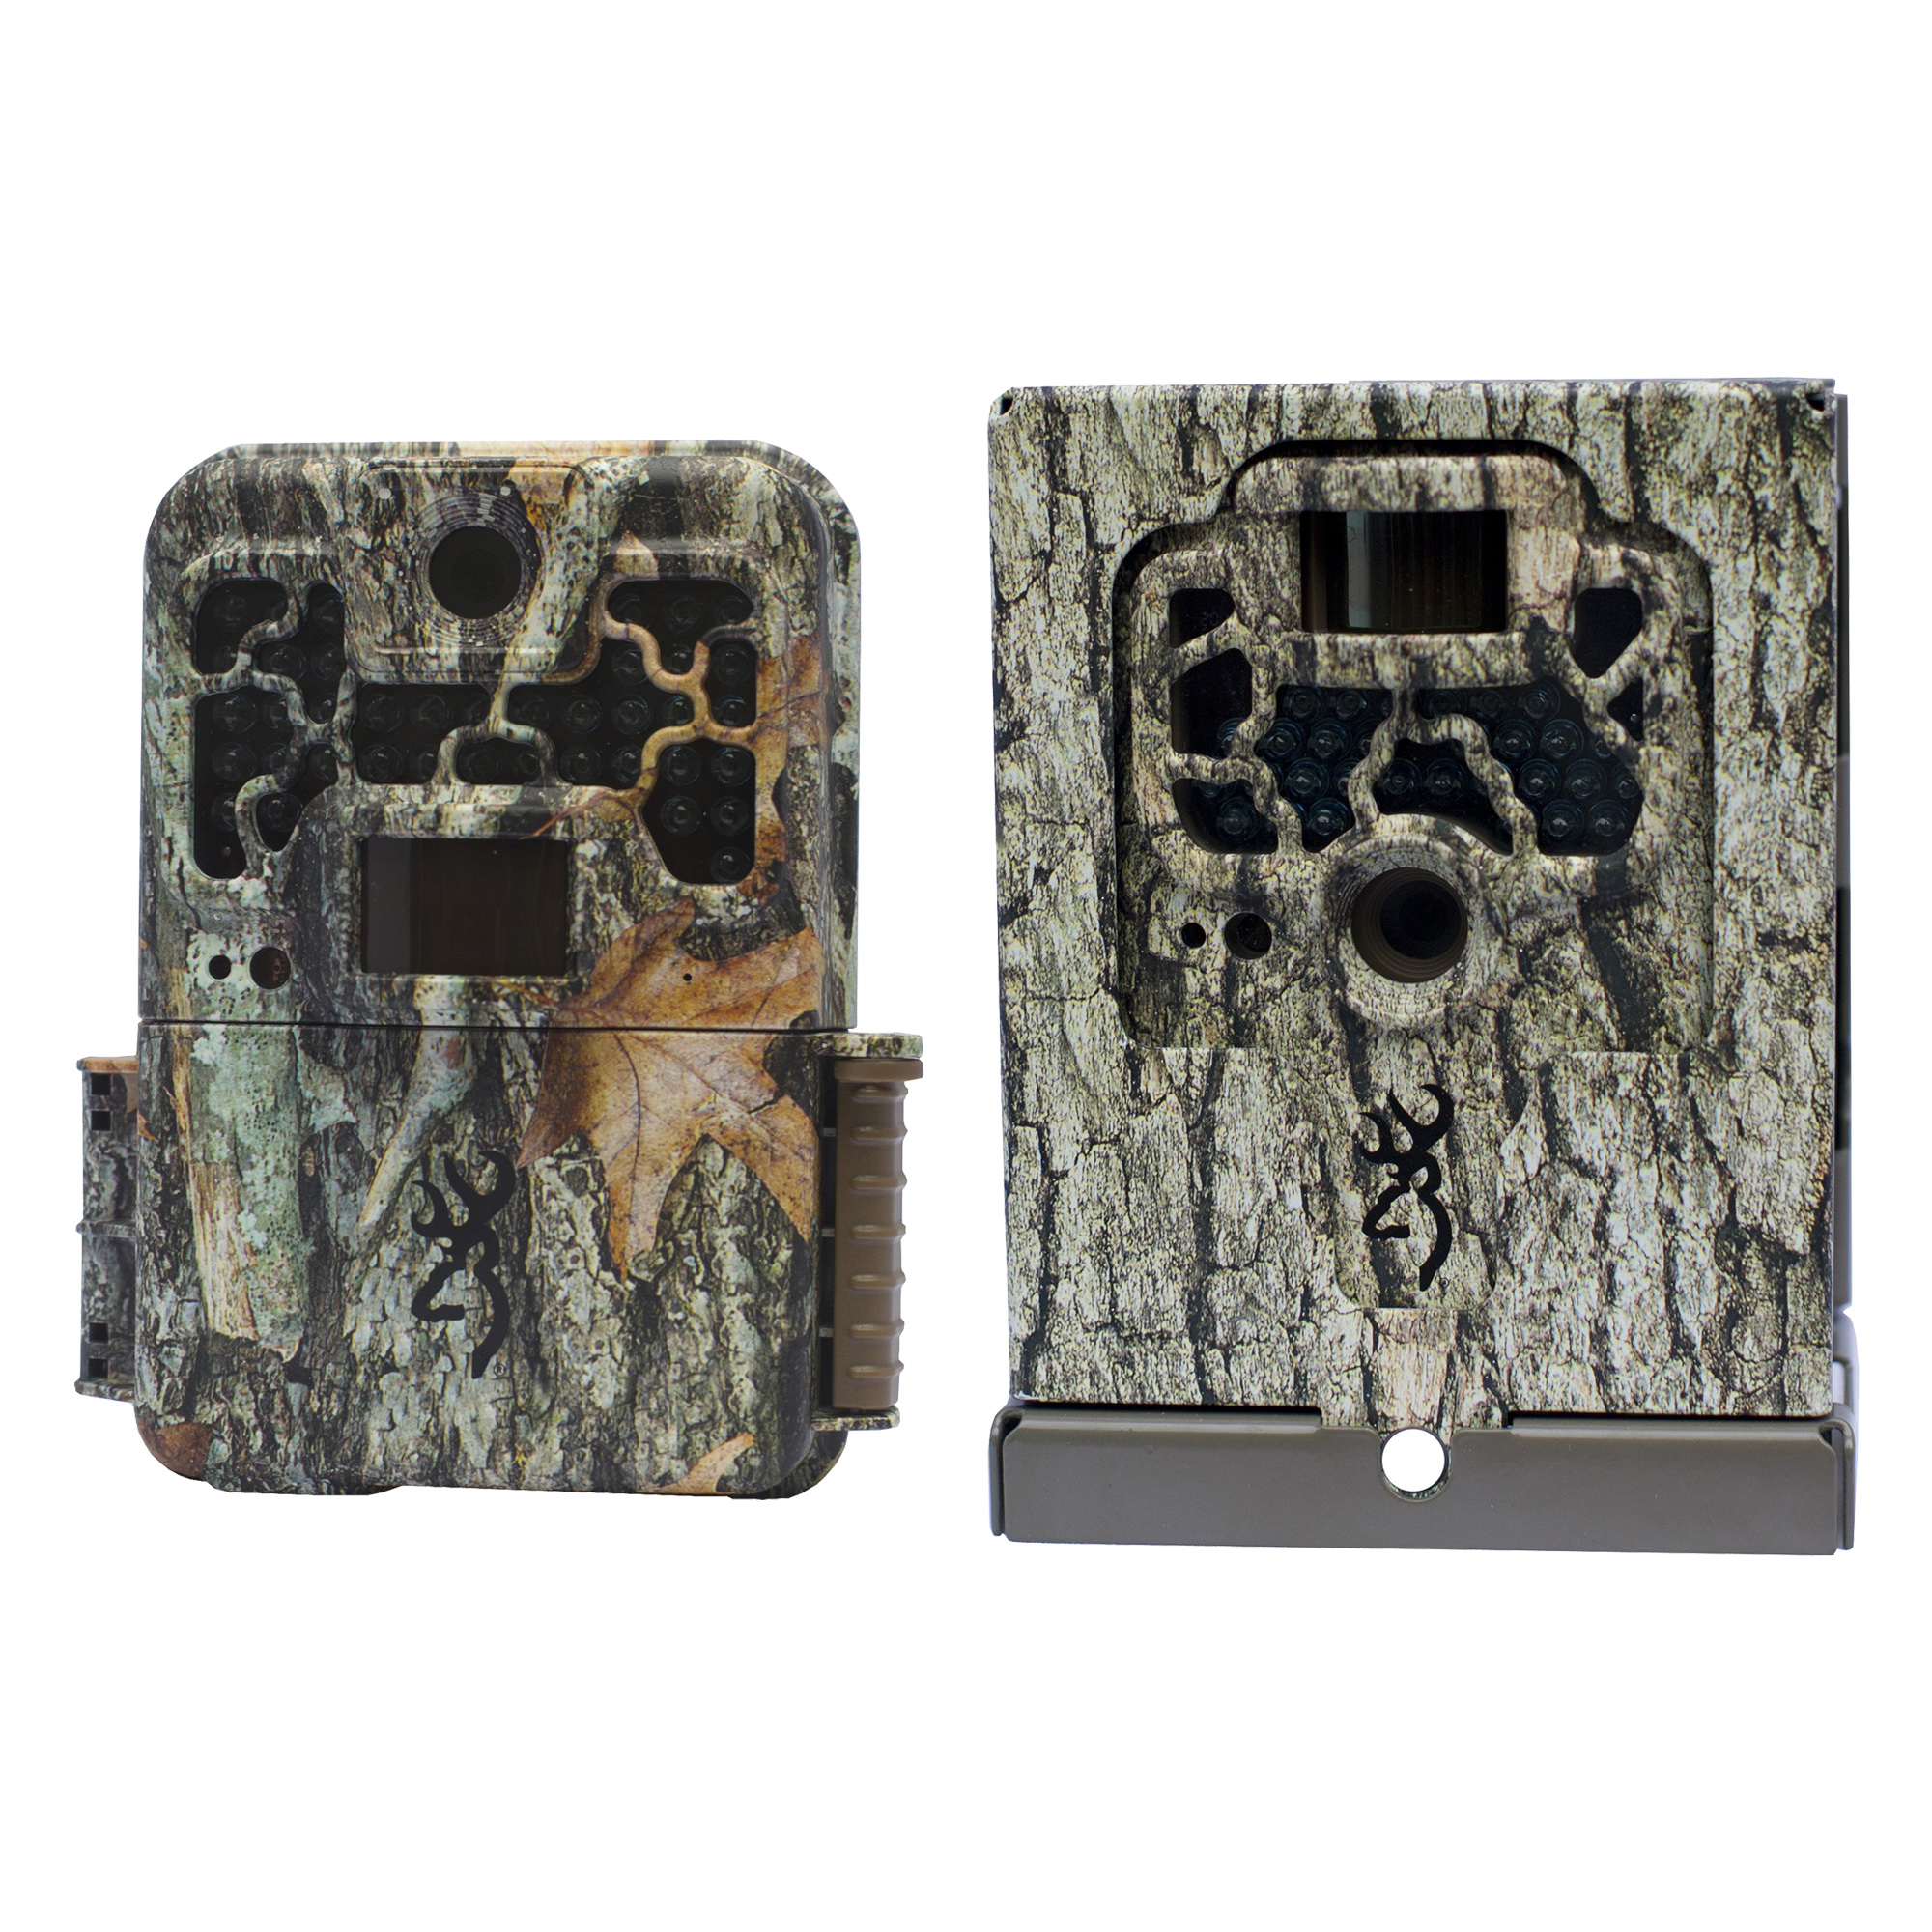 Browning Trail Cameras Recon Force FHD Extreme 20MP Game Camera + Security Box by Browning Trail Cameras